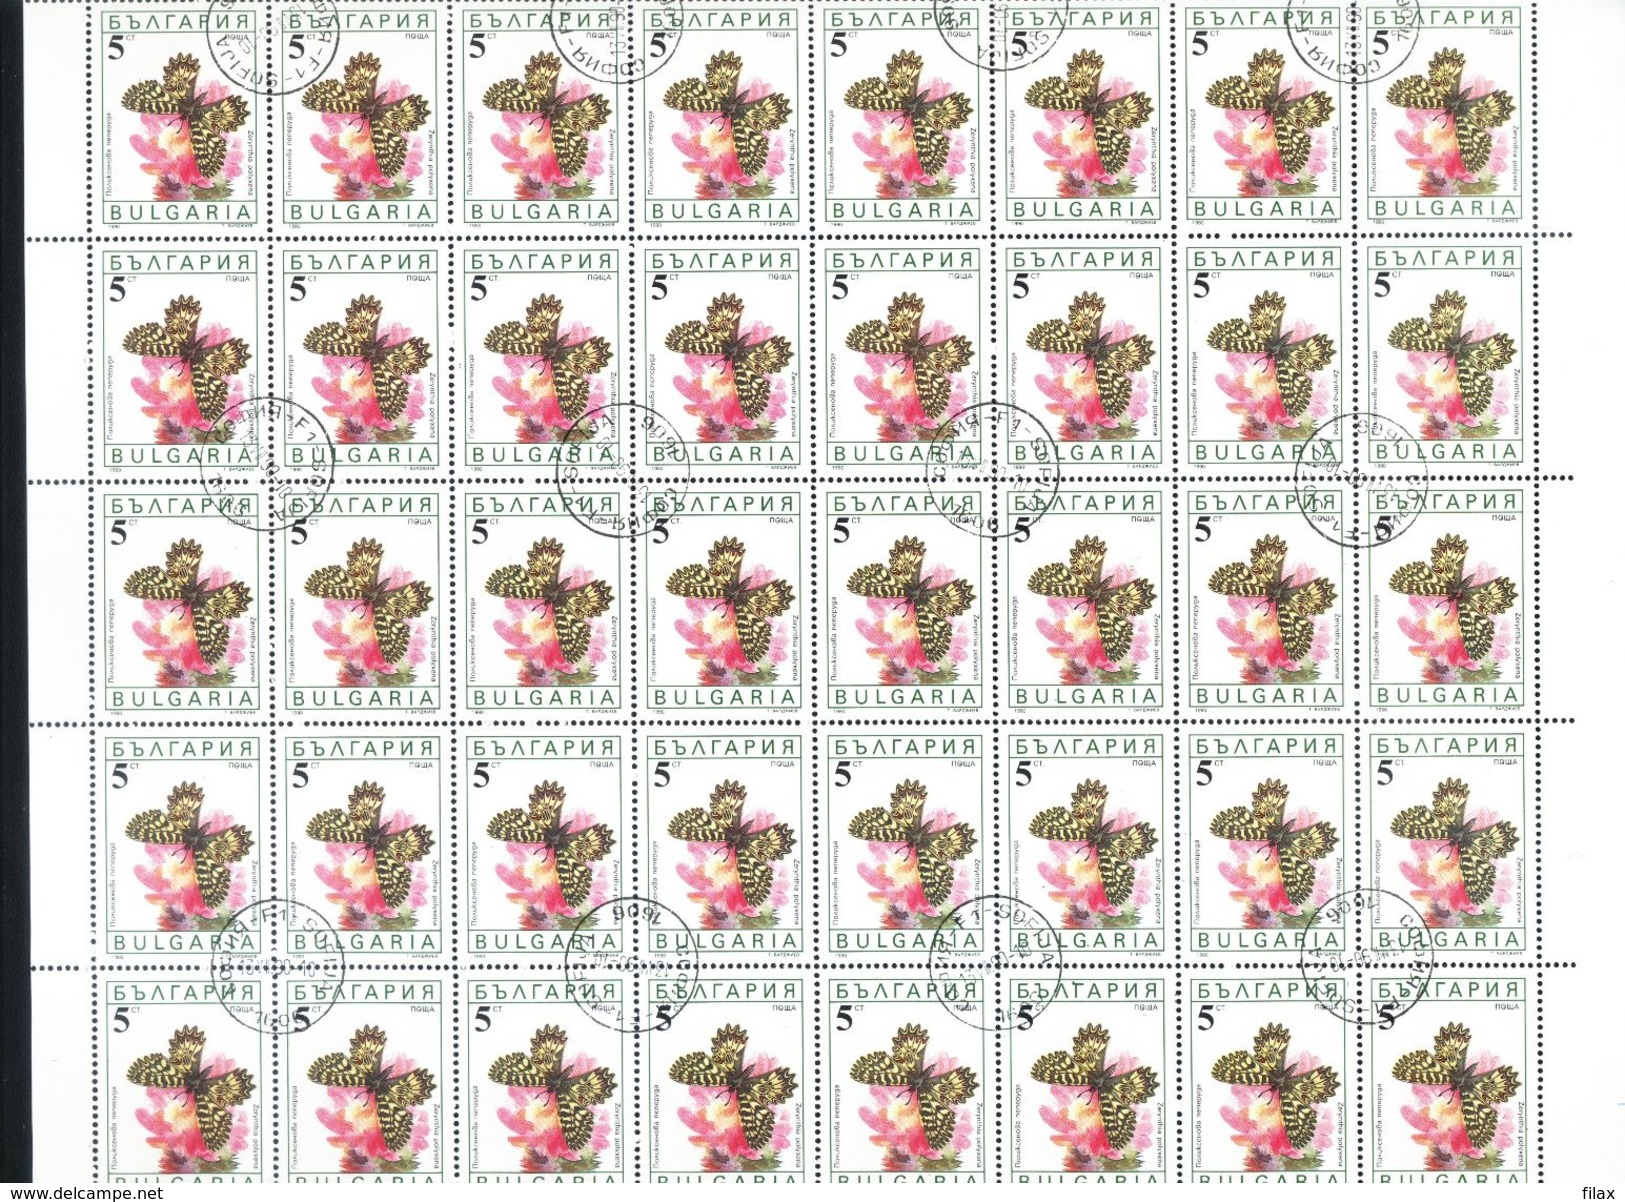 LOT BGCTO02 - CHEAP CTO STAMPS IN SHEETS (for Packets Or Resale) - Mezclas (min 1000 Sellos)